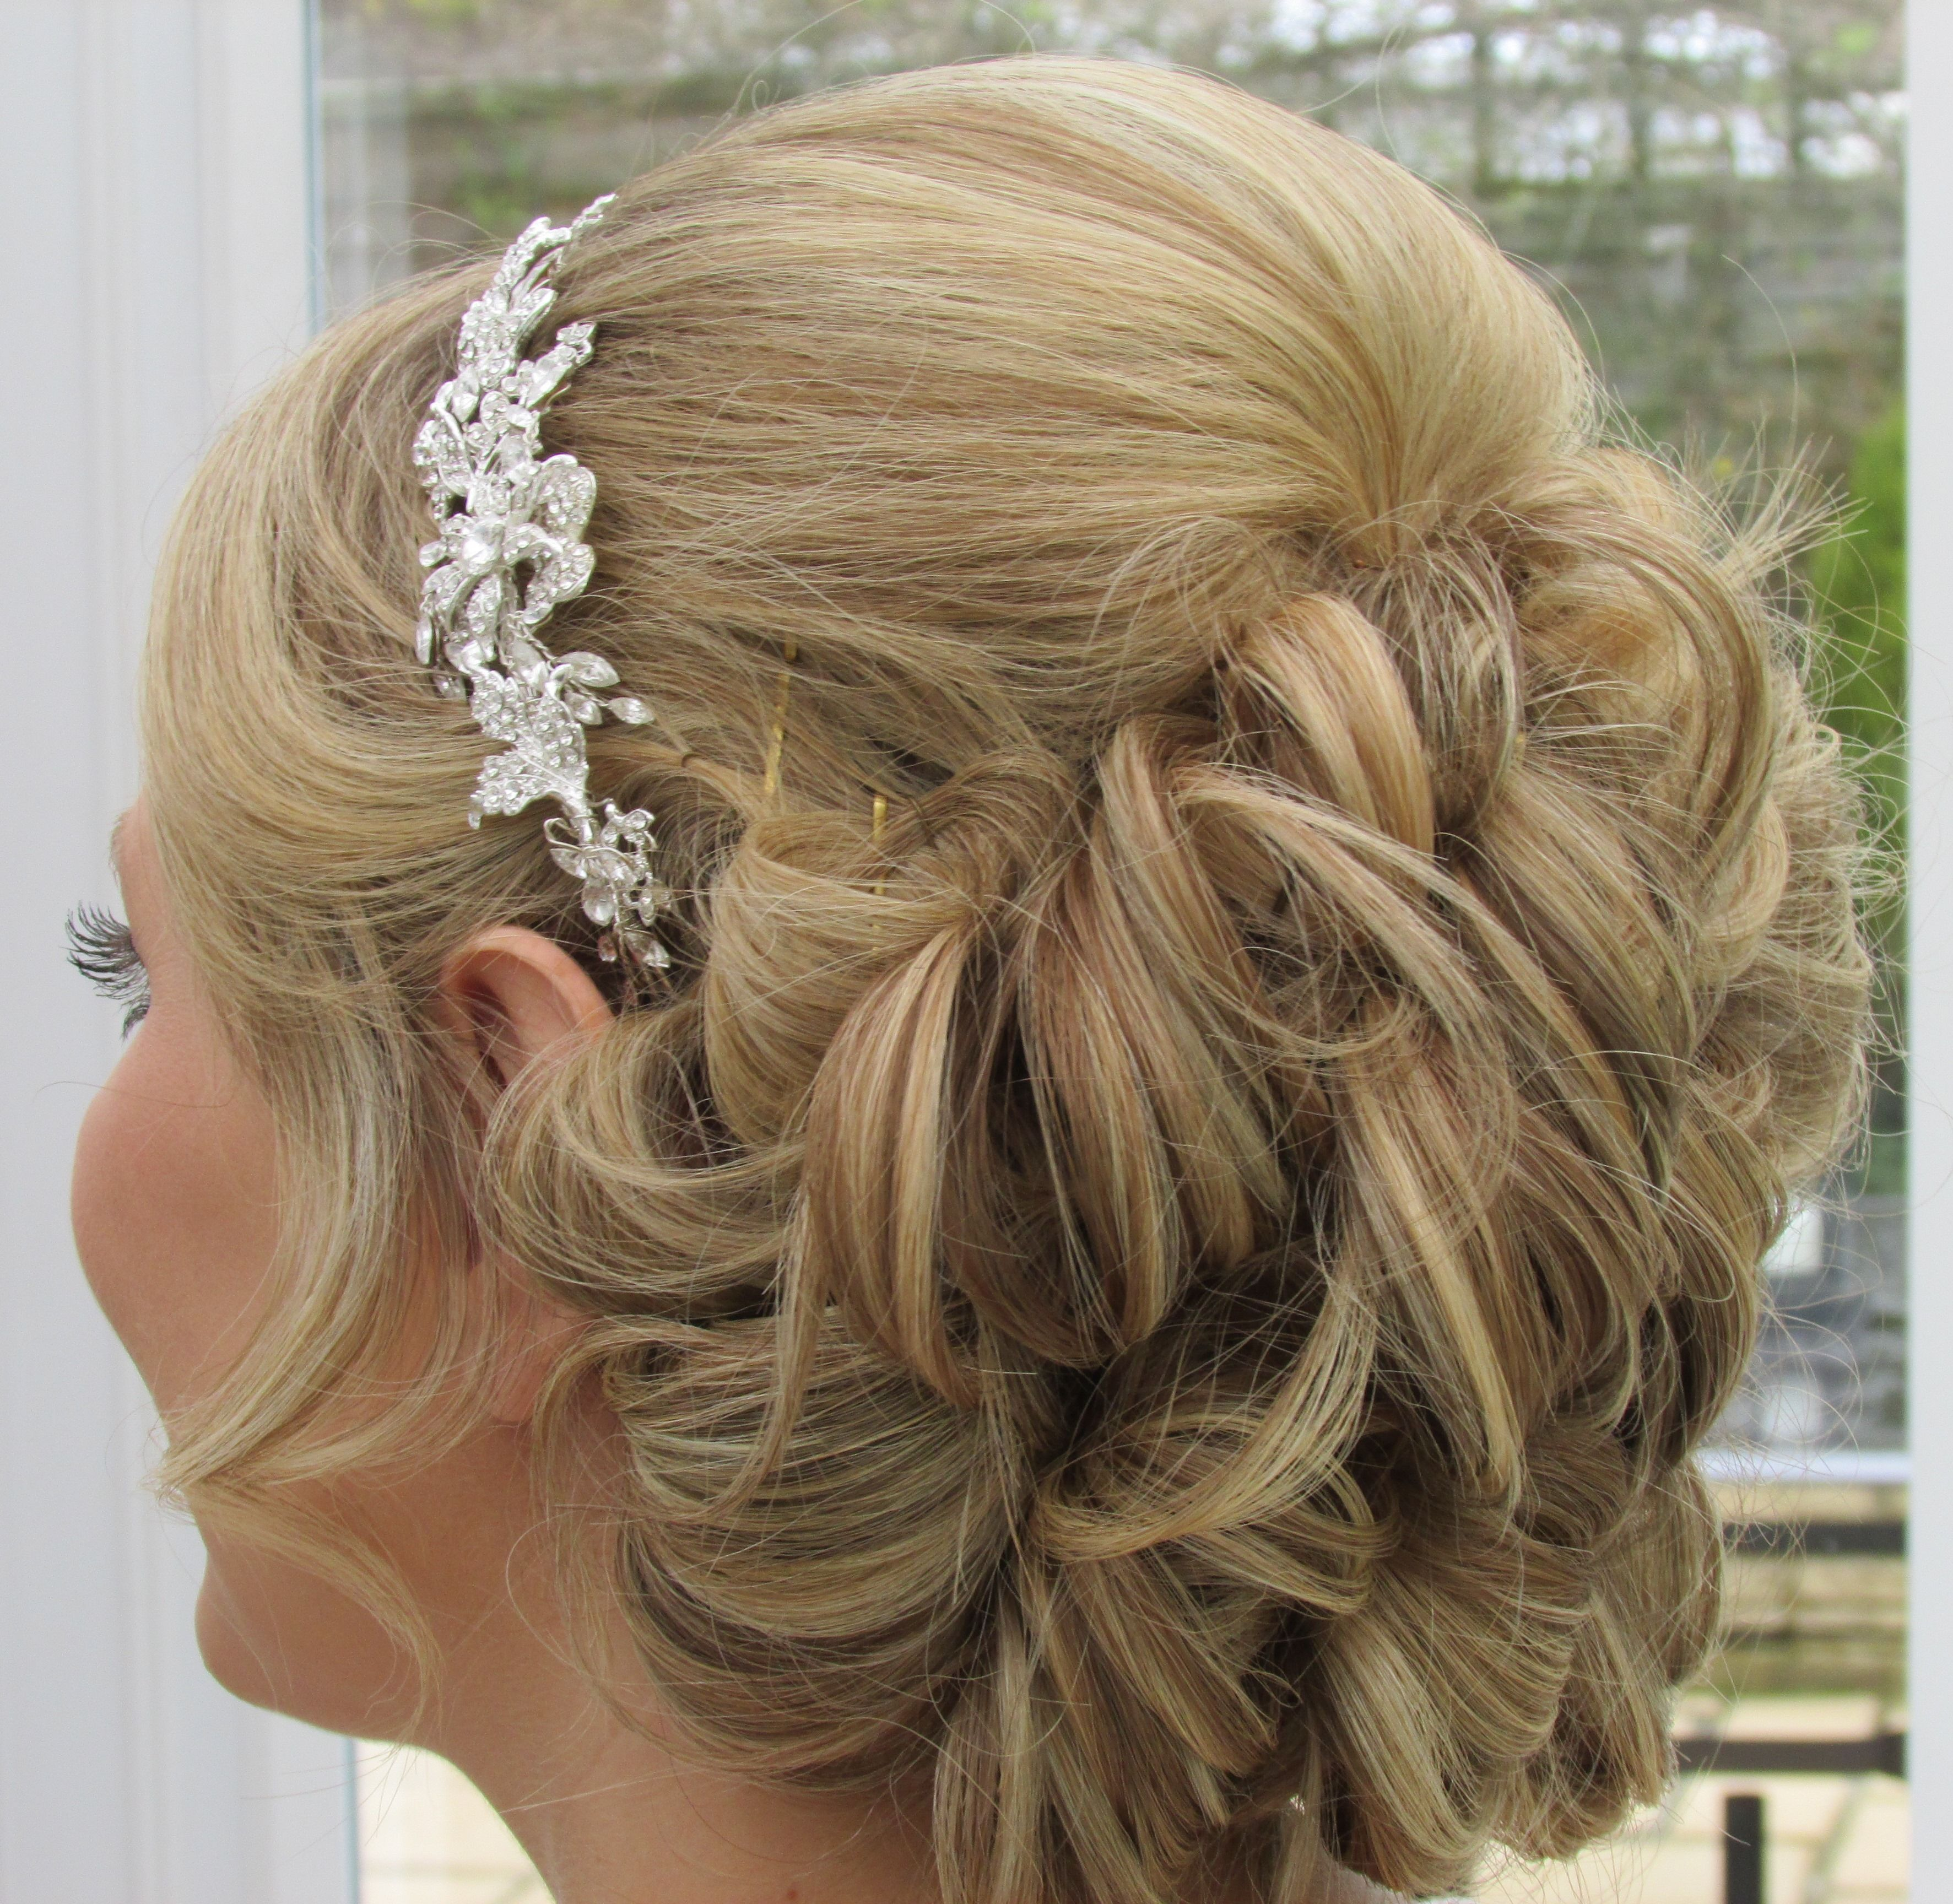 bridal hair upstyle with loose curls and hair extensions